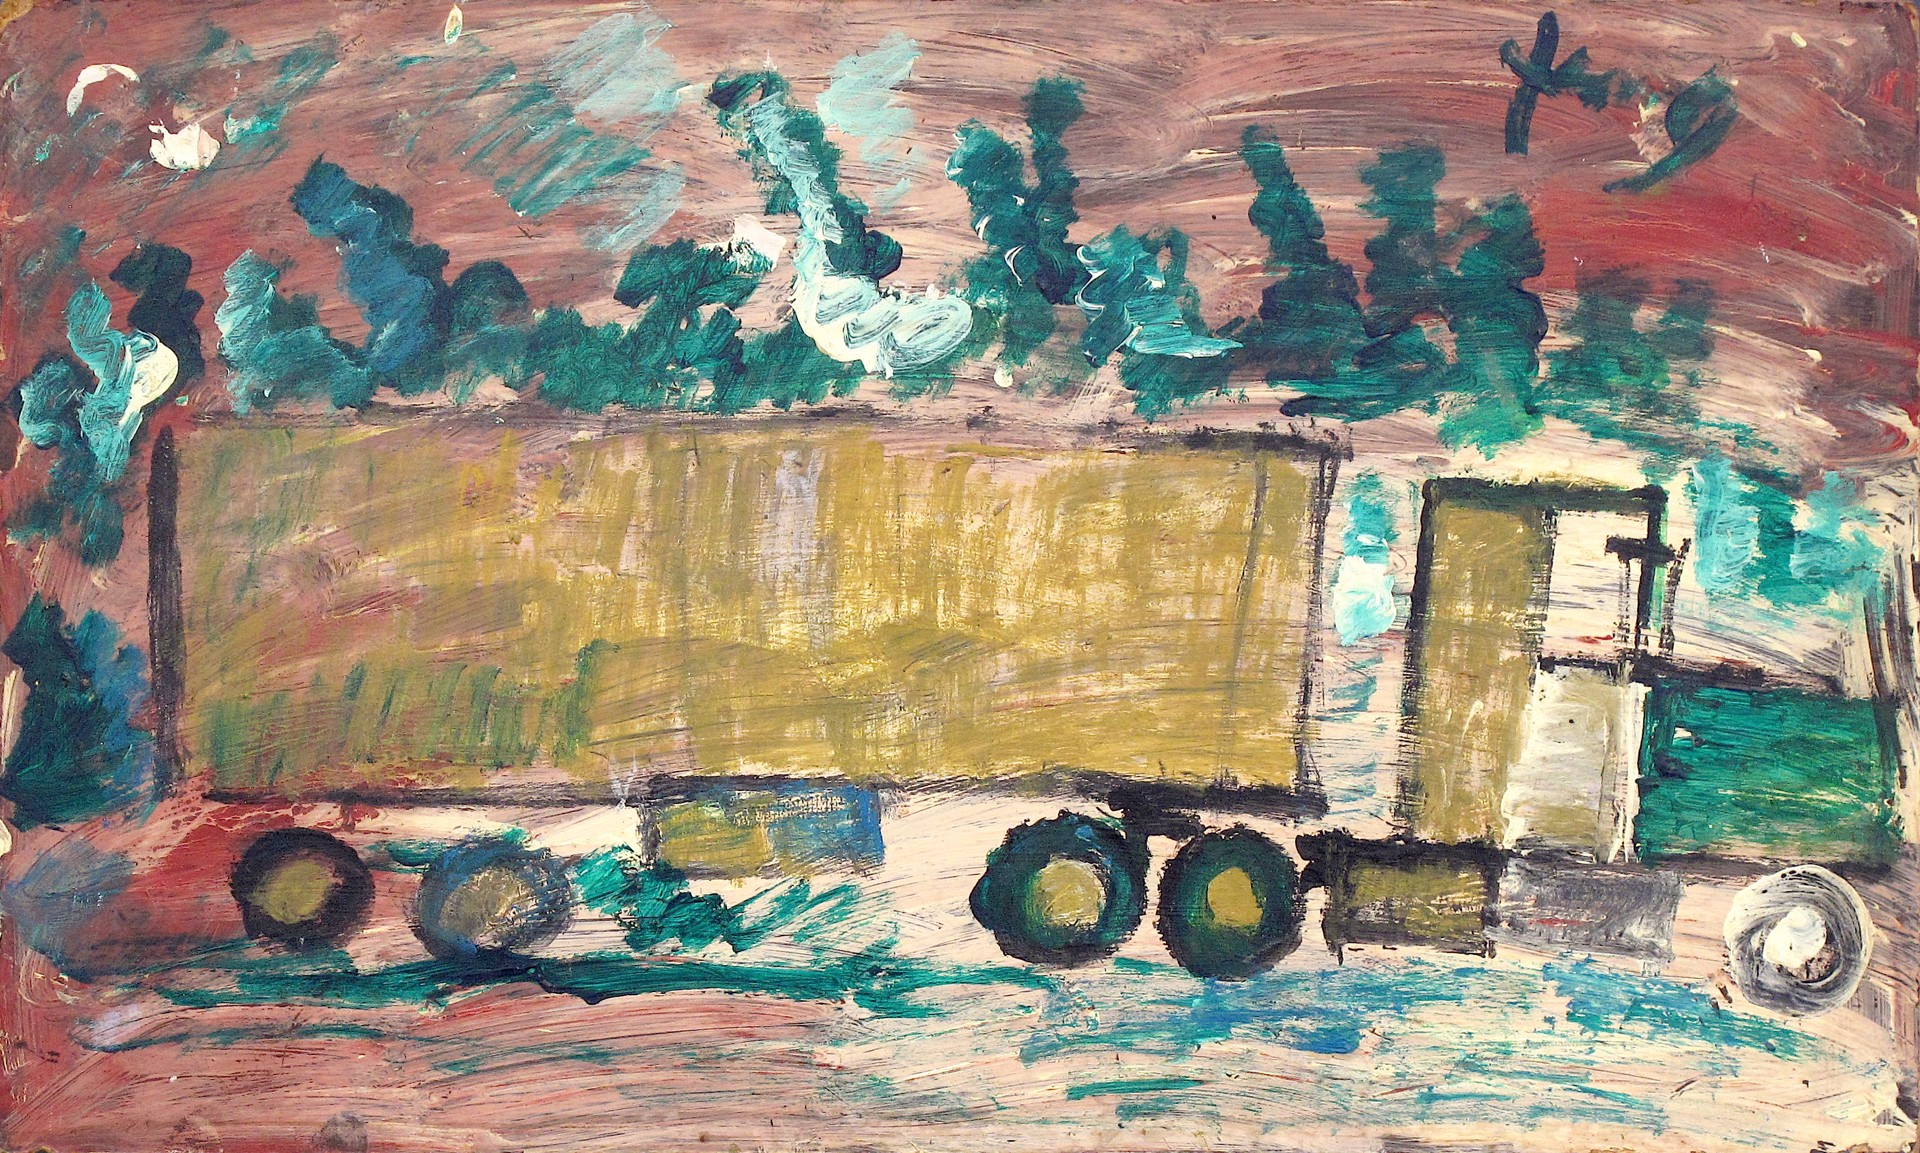 18 Wheeler by Purvis Young